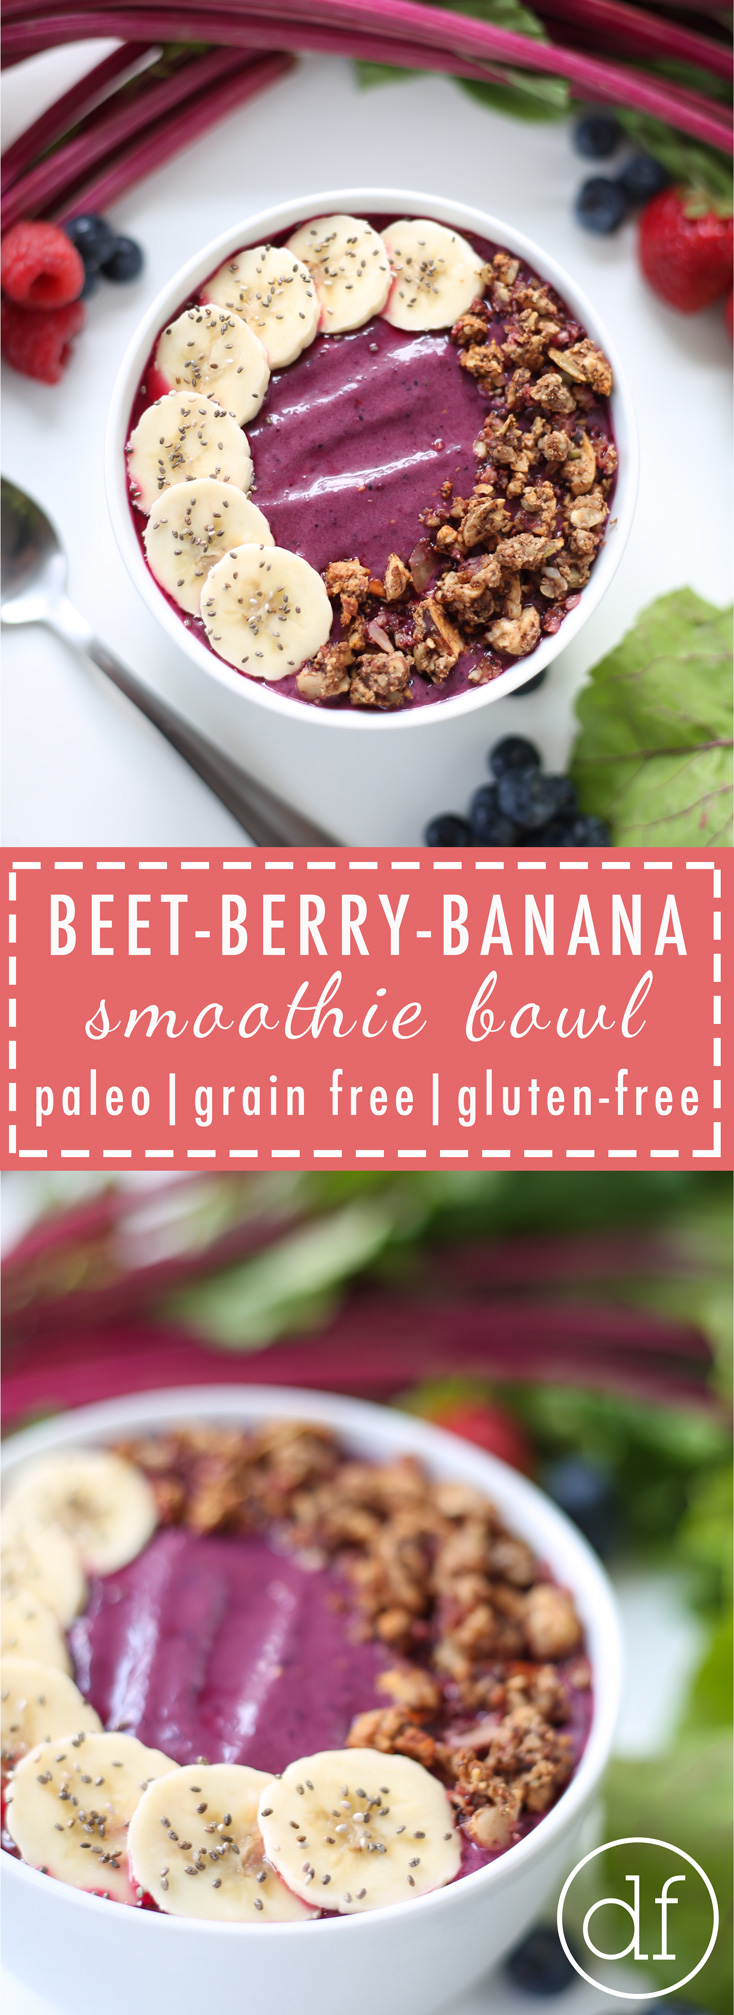 Smoothie Bowl, Paleo, No Added Sugar, Grain Free, Gluten Free, Dairy Free, Whole 30,